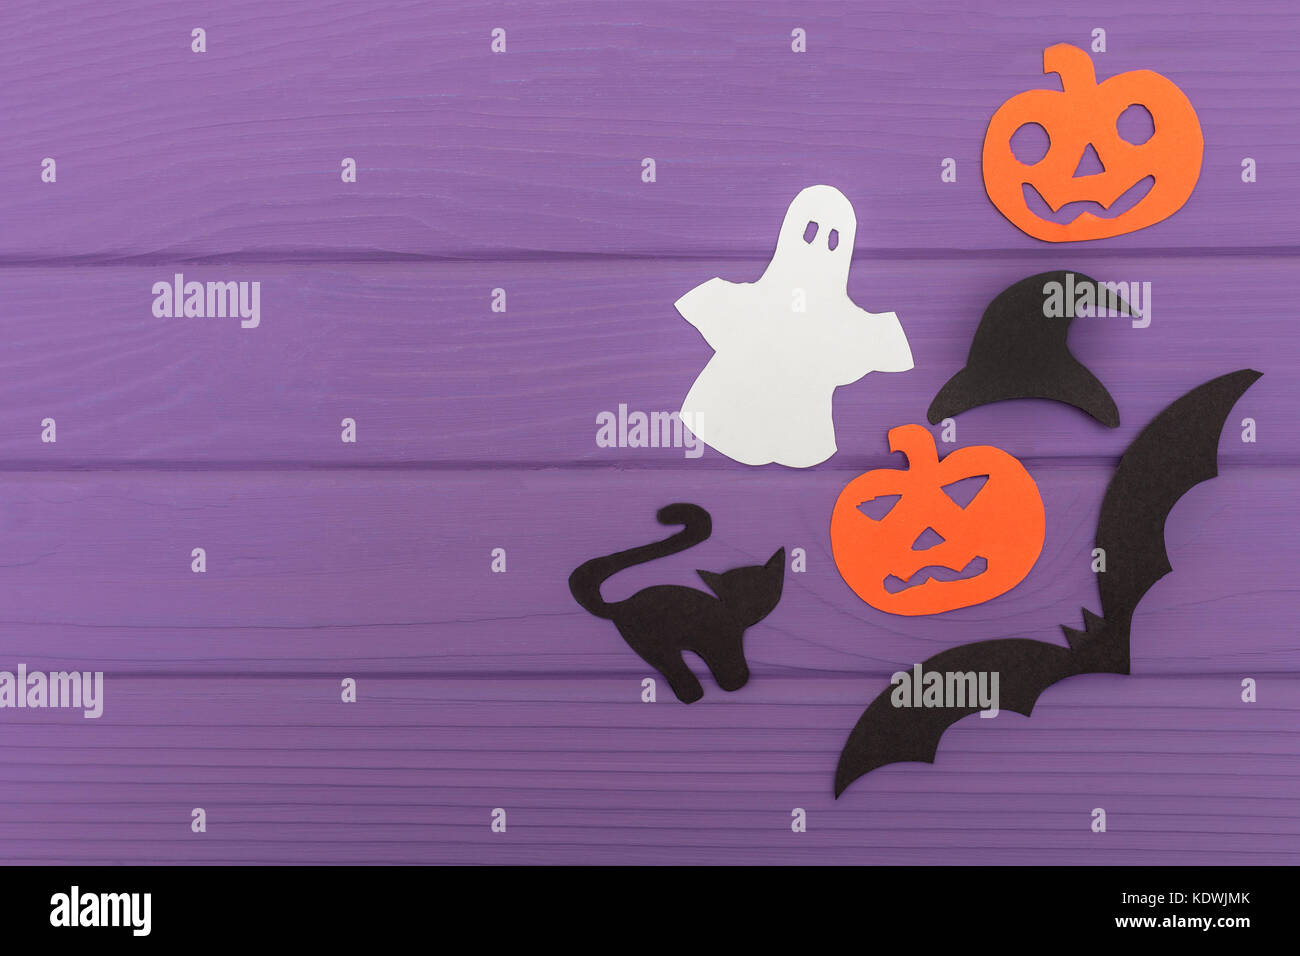 Halloween silhouettes cut out of paper made of corner frame with pumpkins, bat, cat, ghost, hat on purple board. - Stock Image